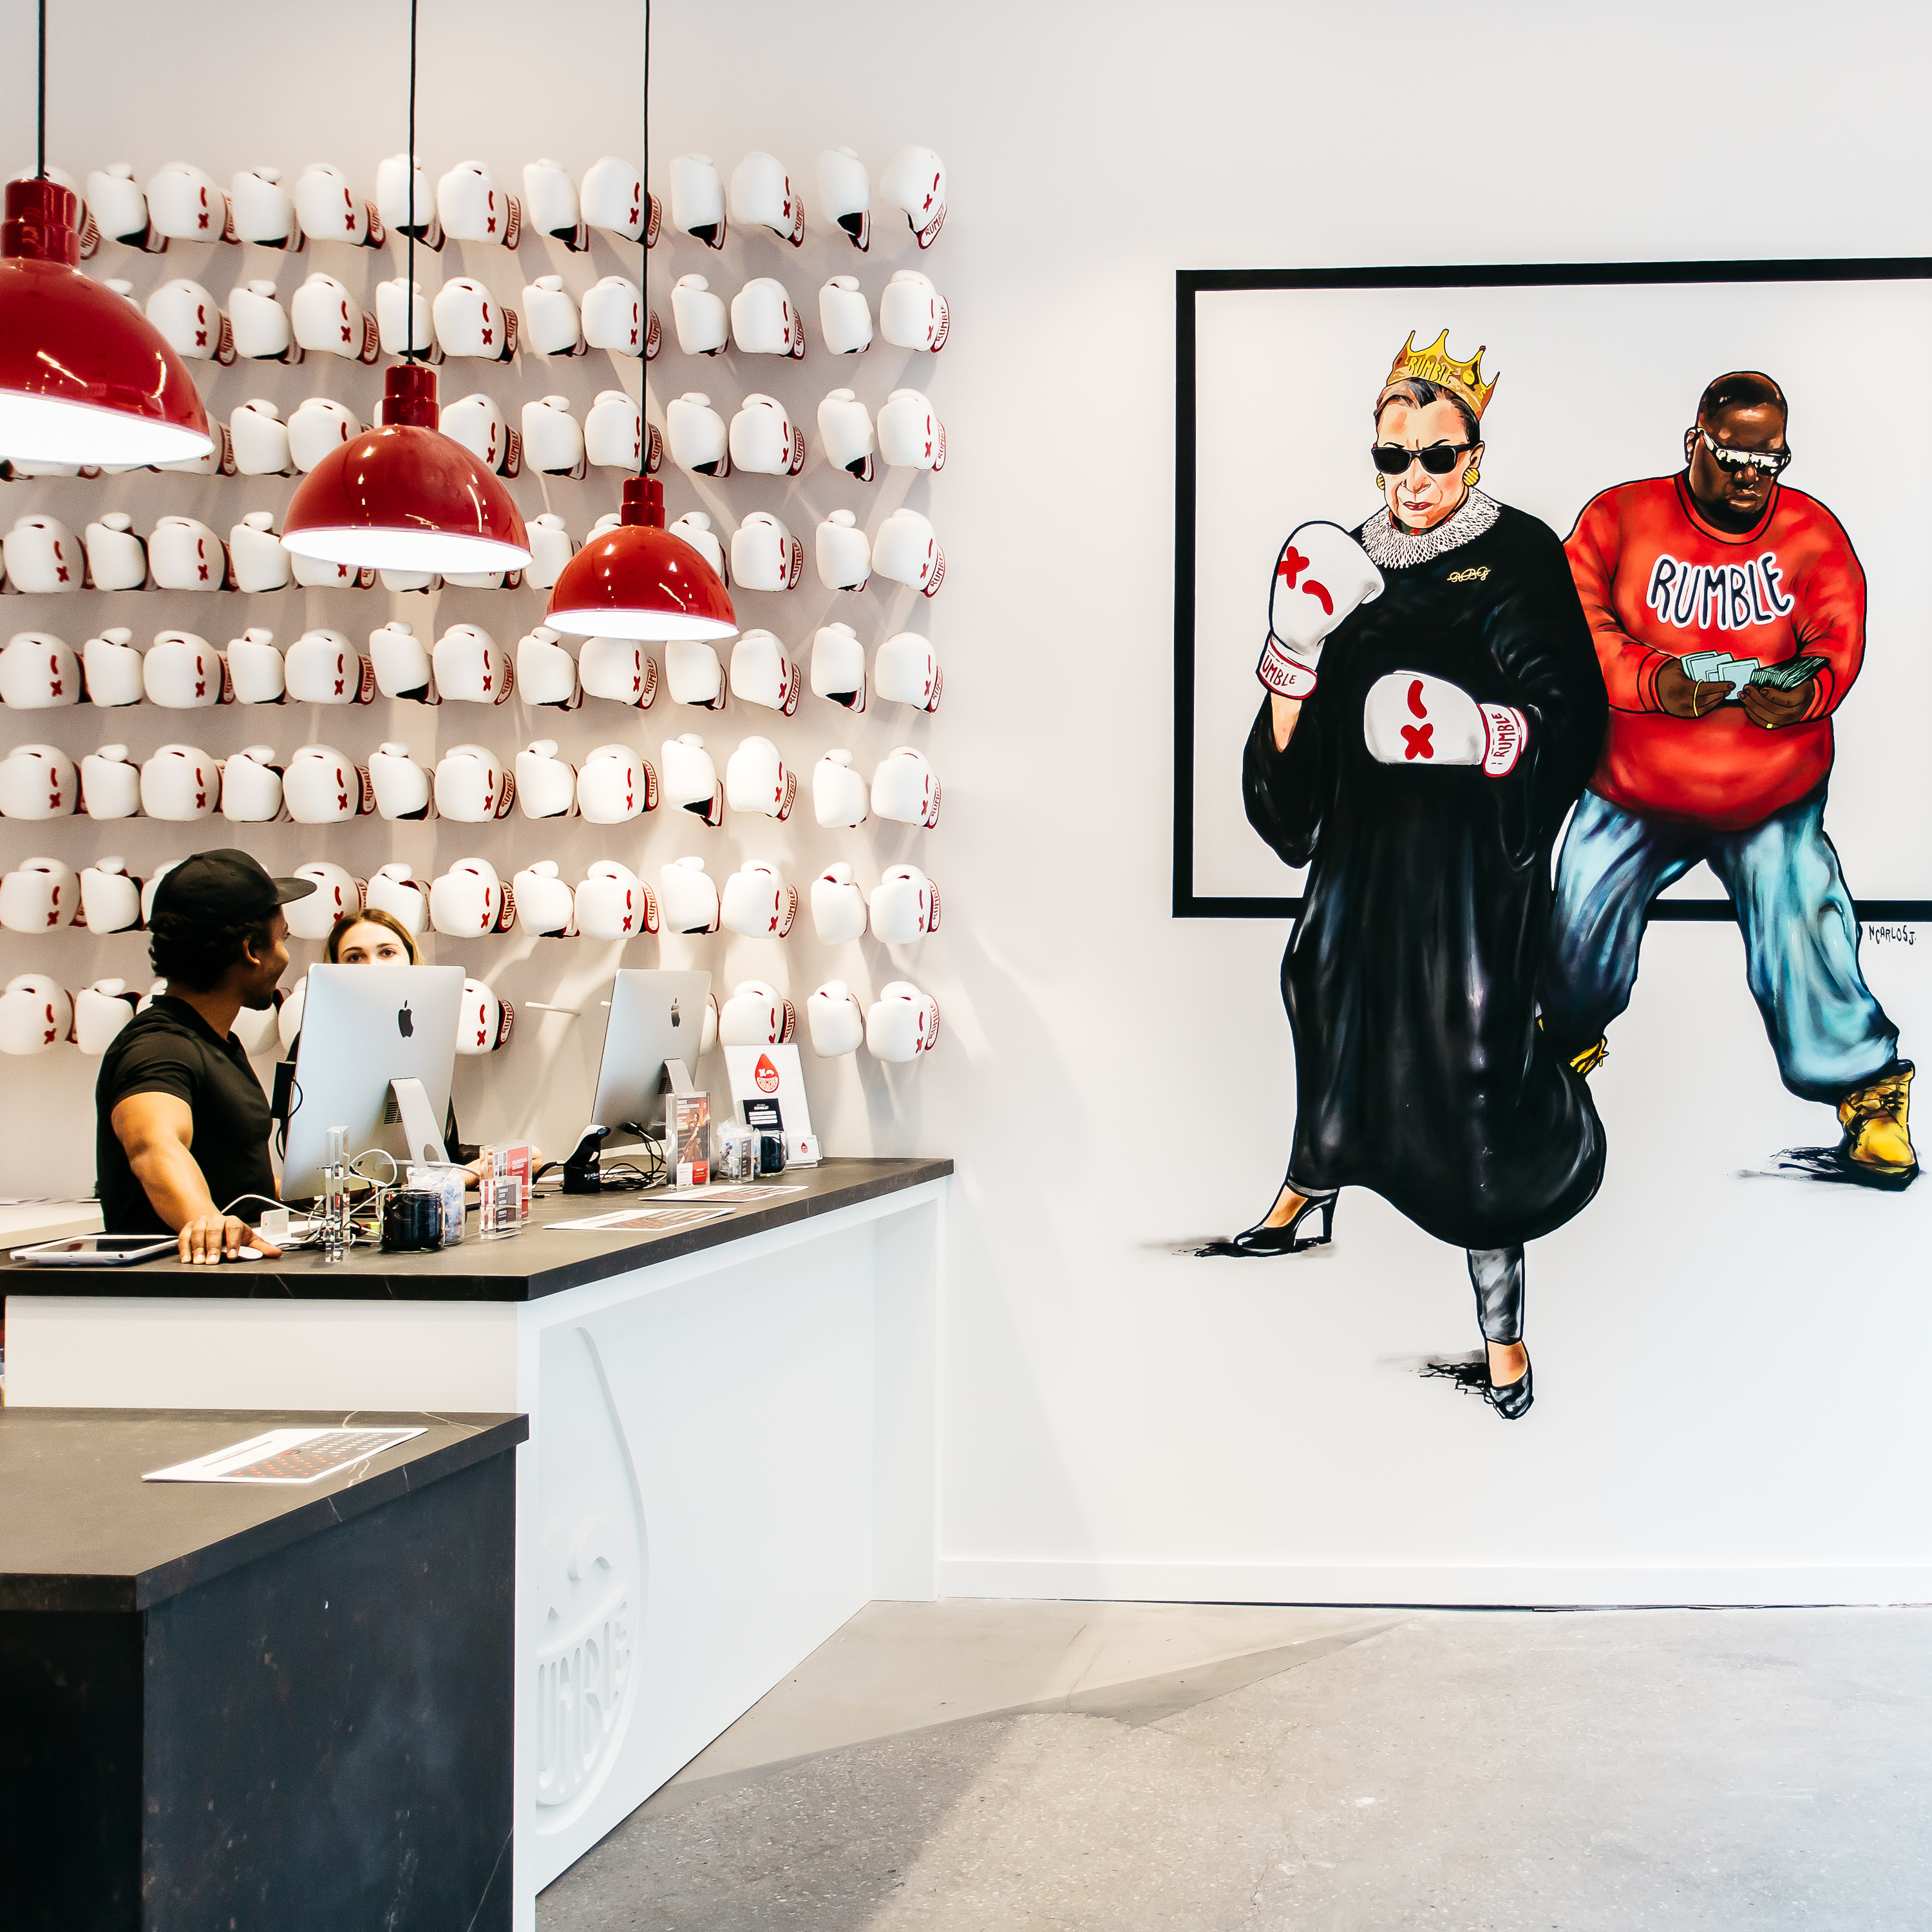 Rumble customizes each studio to the location, and the D.C. studio not only has an epic Abe Lincoln in boxing gloves statue, but it also has a Notorious RBG mural.{ }(Image: Courtesy Rumble)